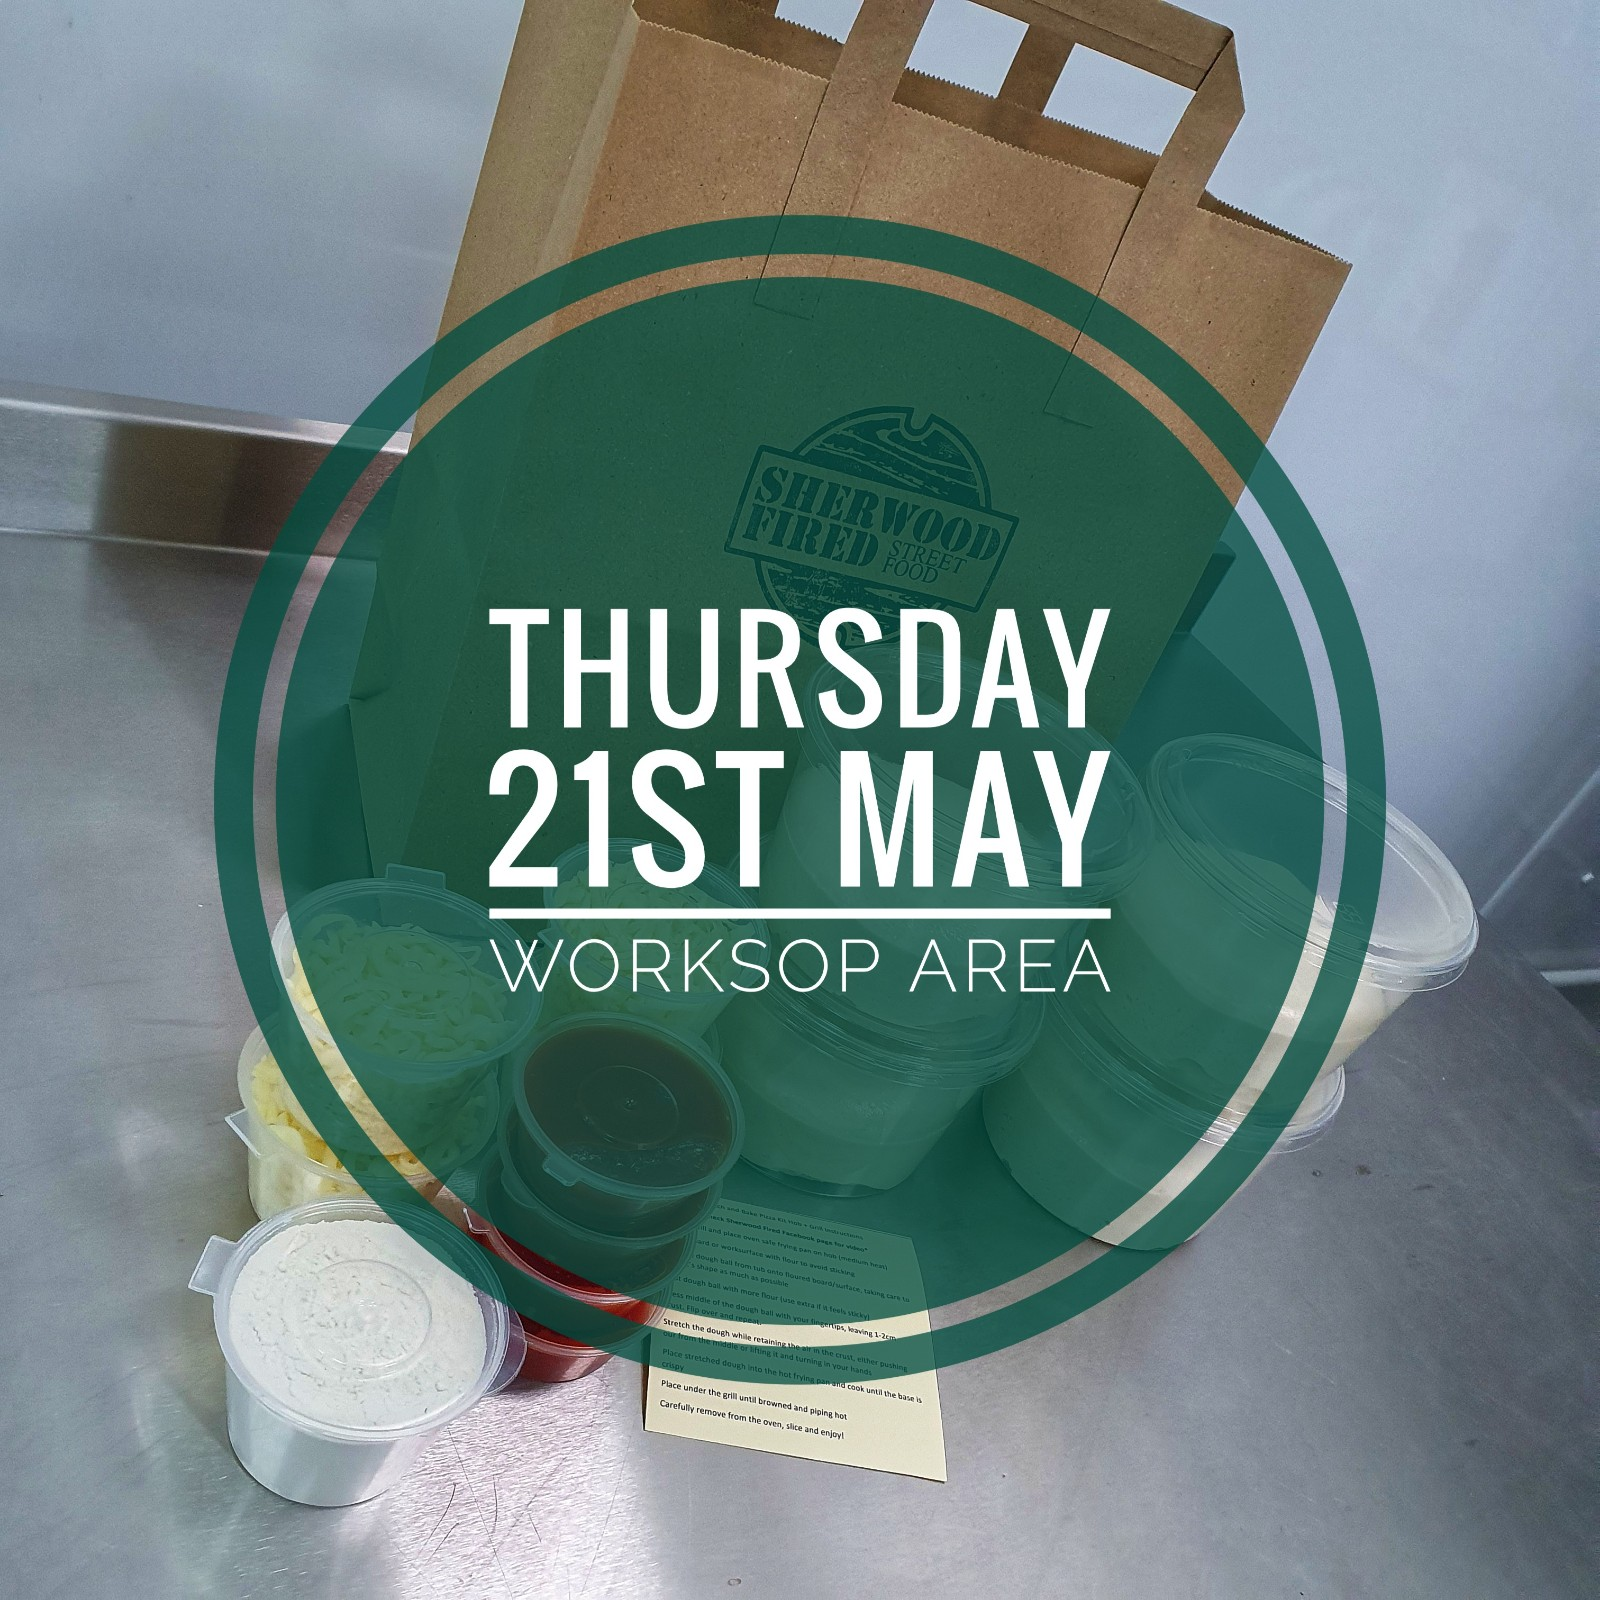 Sourdough Stretch and Bake Pizza Kit (THURSDAY 21st MAY WORKSOP AREA)